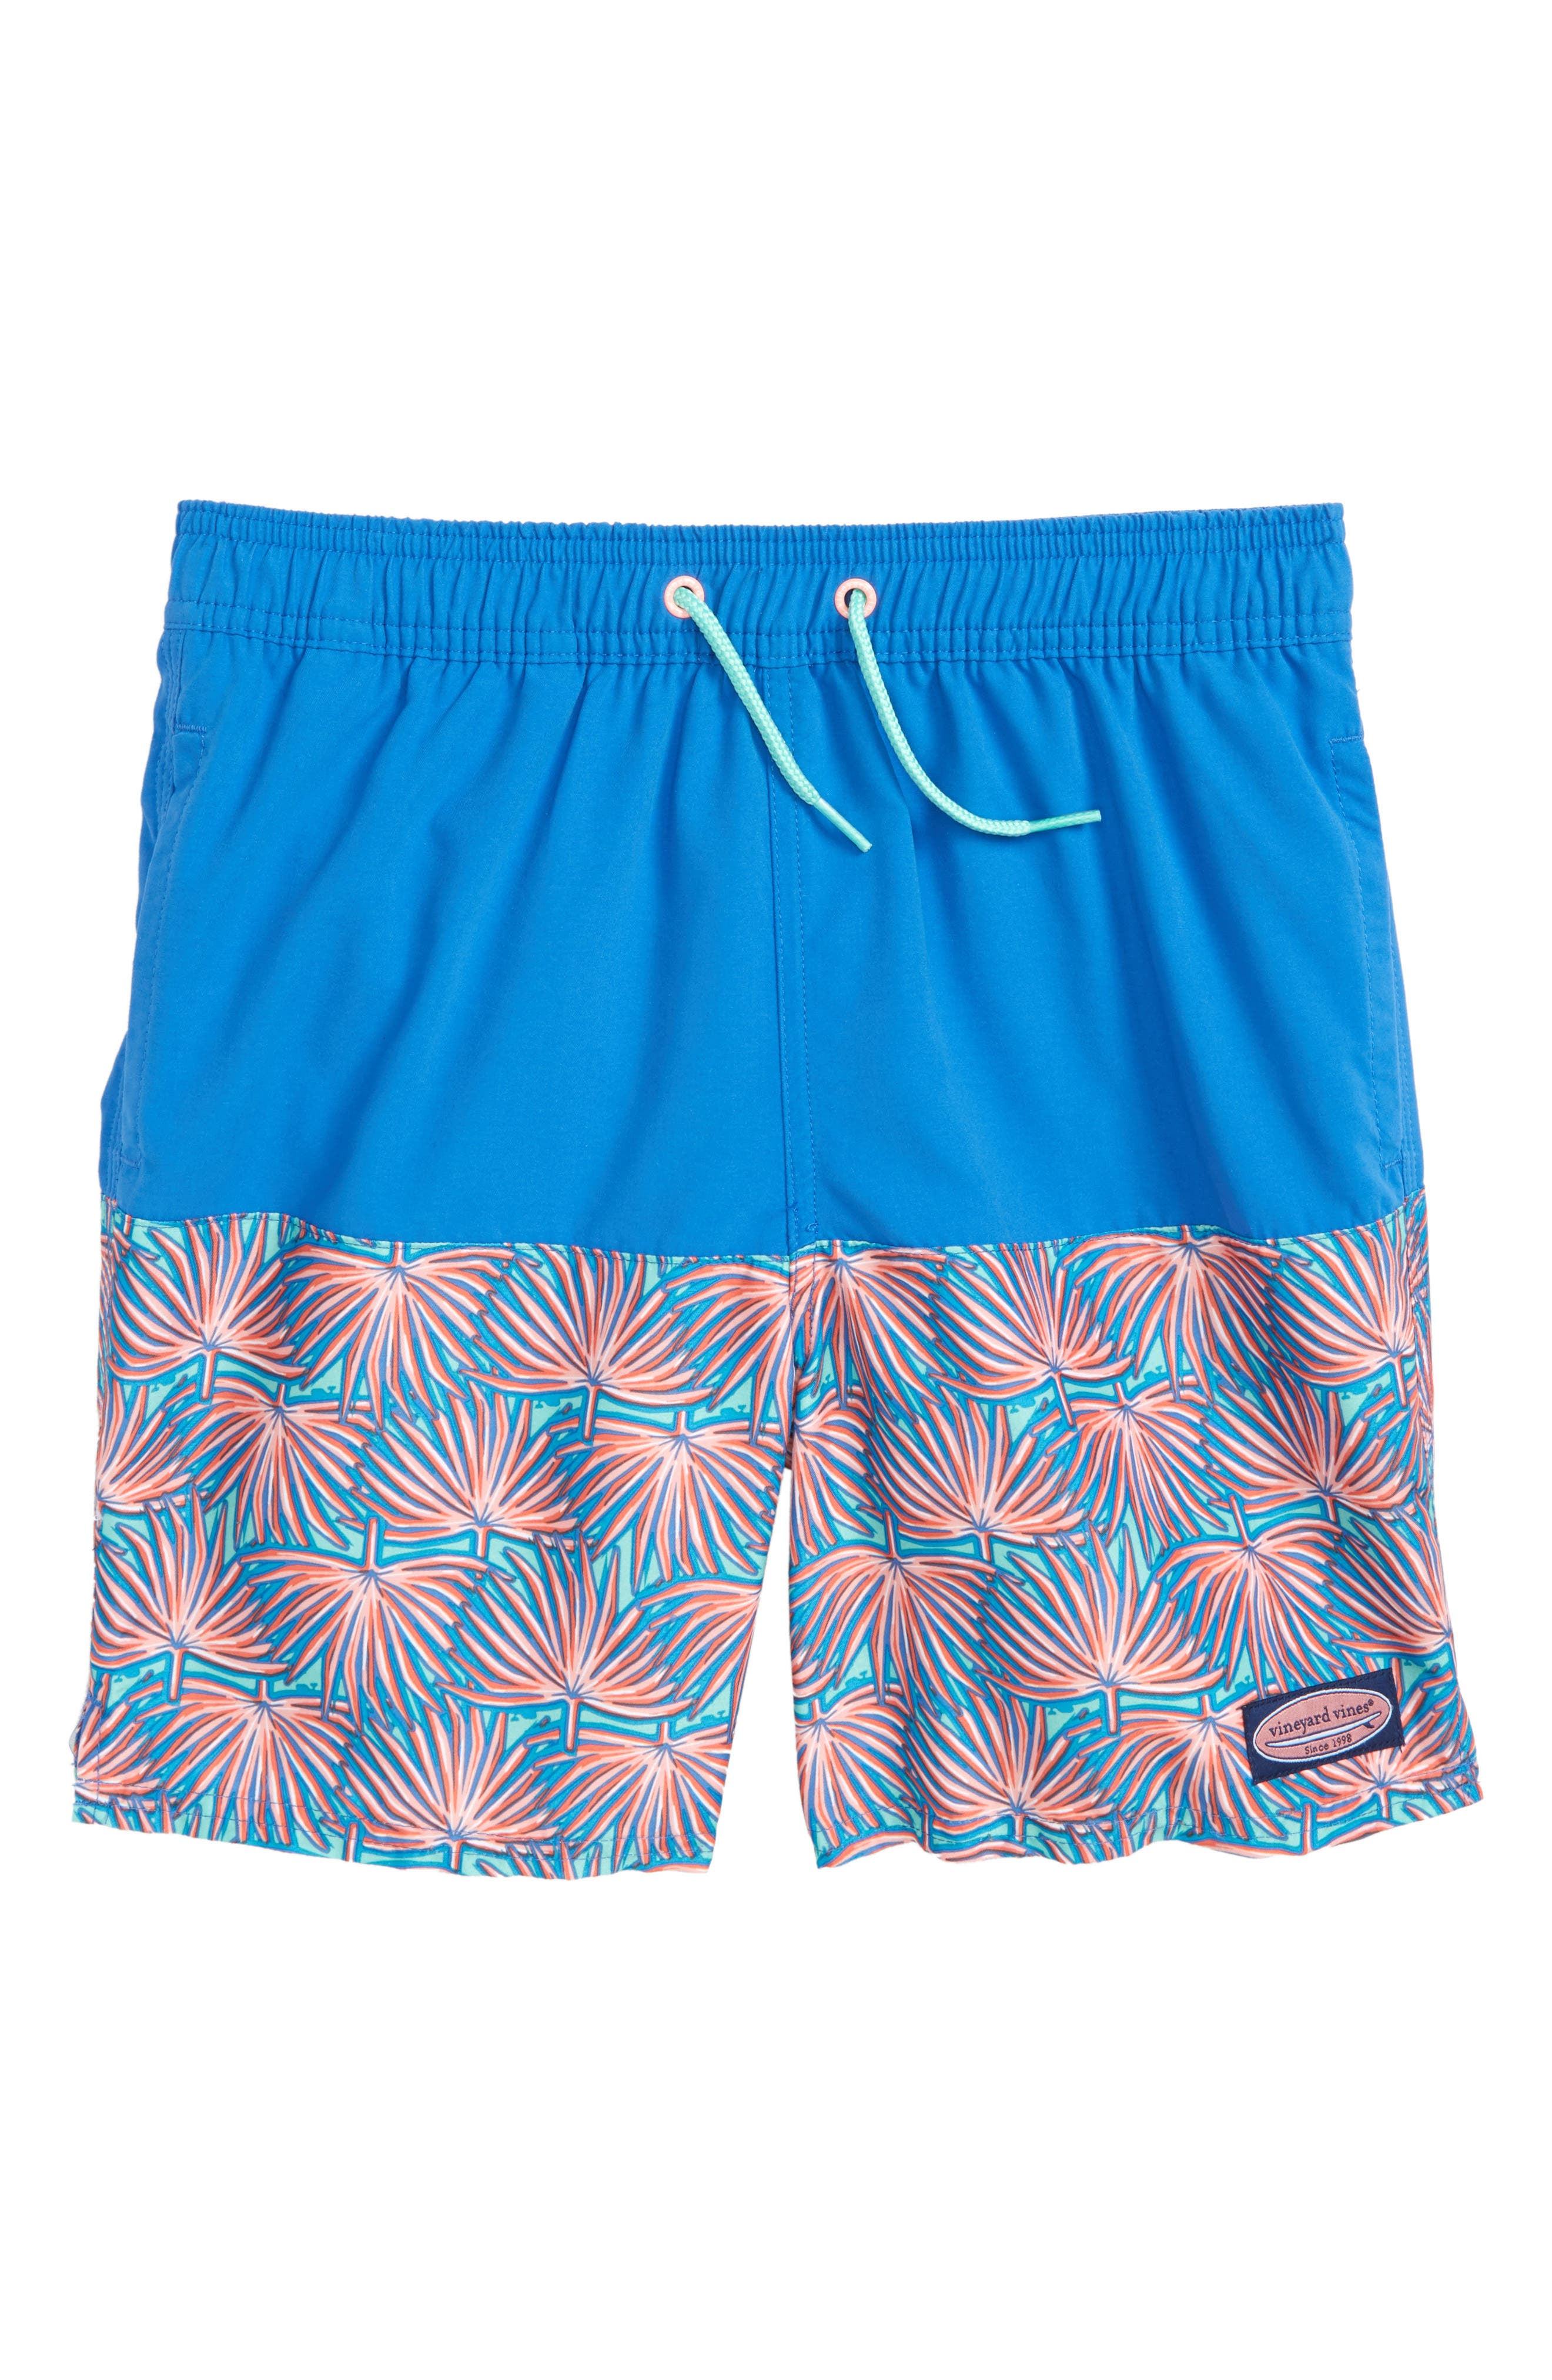 Chappy Fan Palm Print Swim Trunks,                             Main thumbnail 1, color,                             Capri Blue